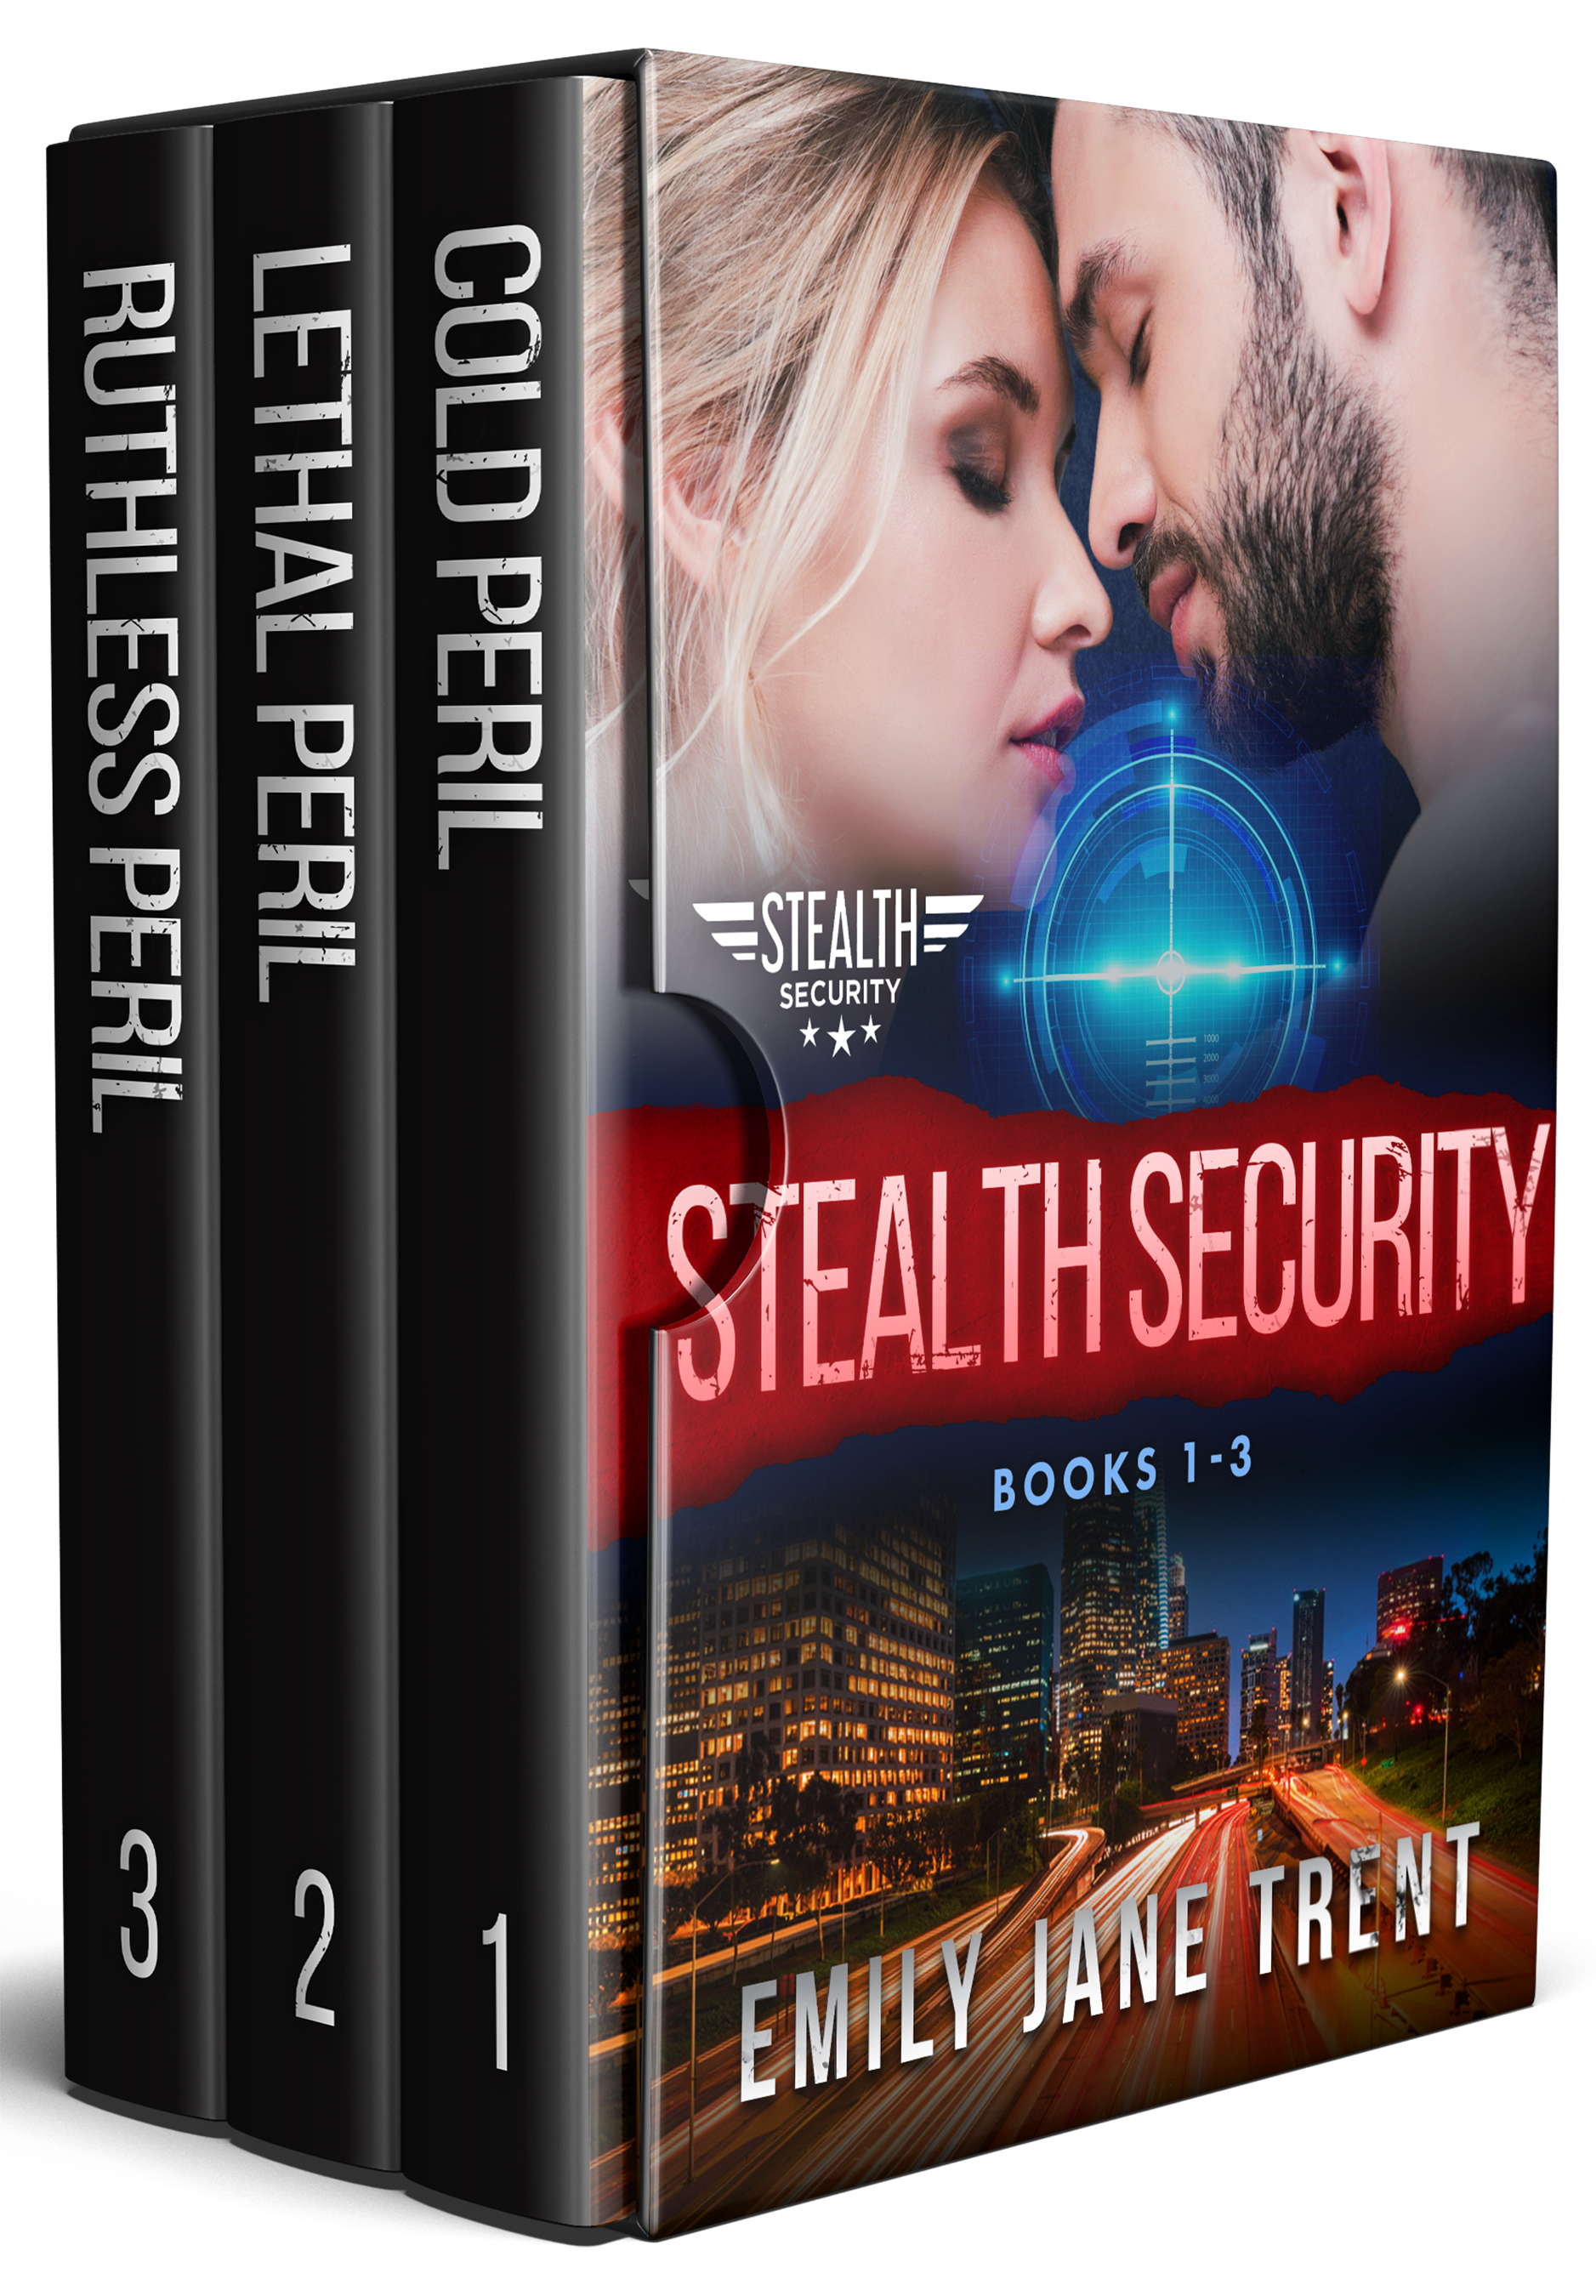 Stealth Security Books 1-3